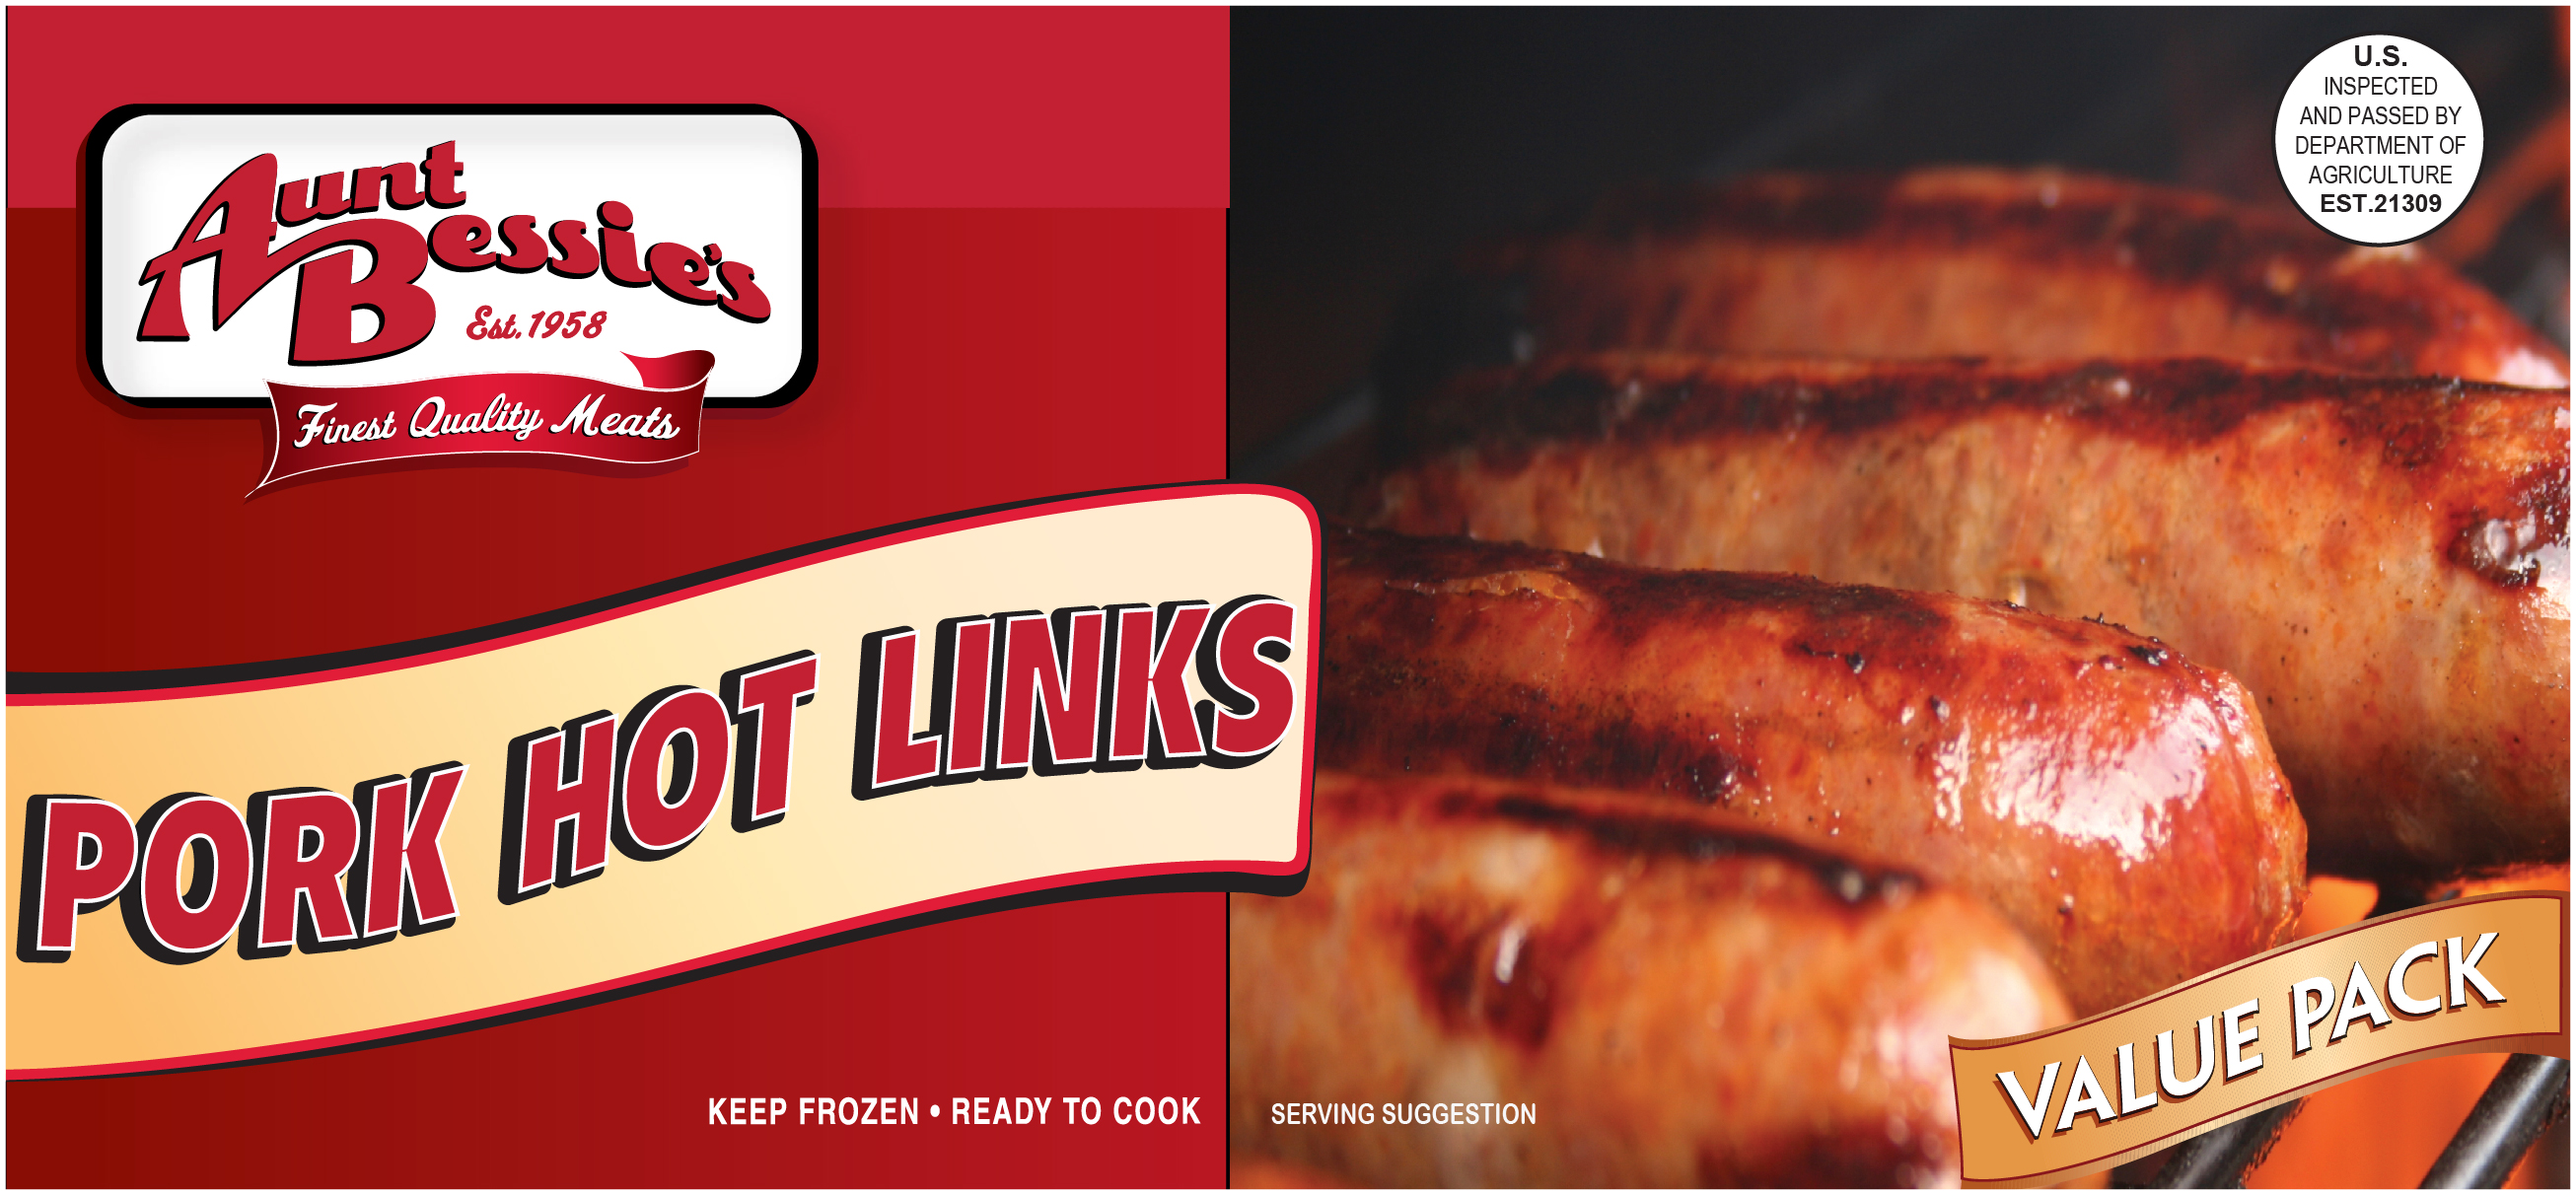 Aunt Bessie's Pork Hot Links